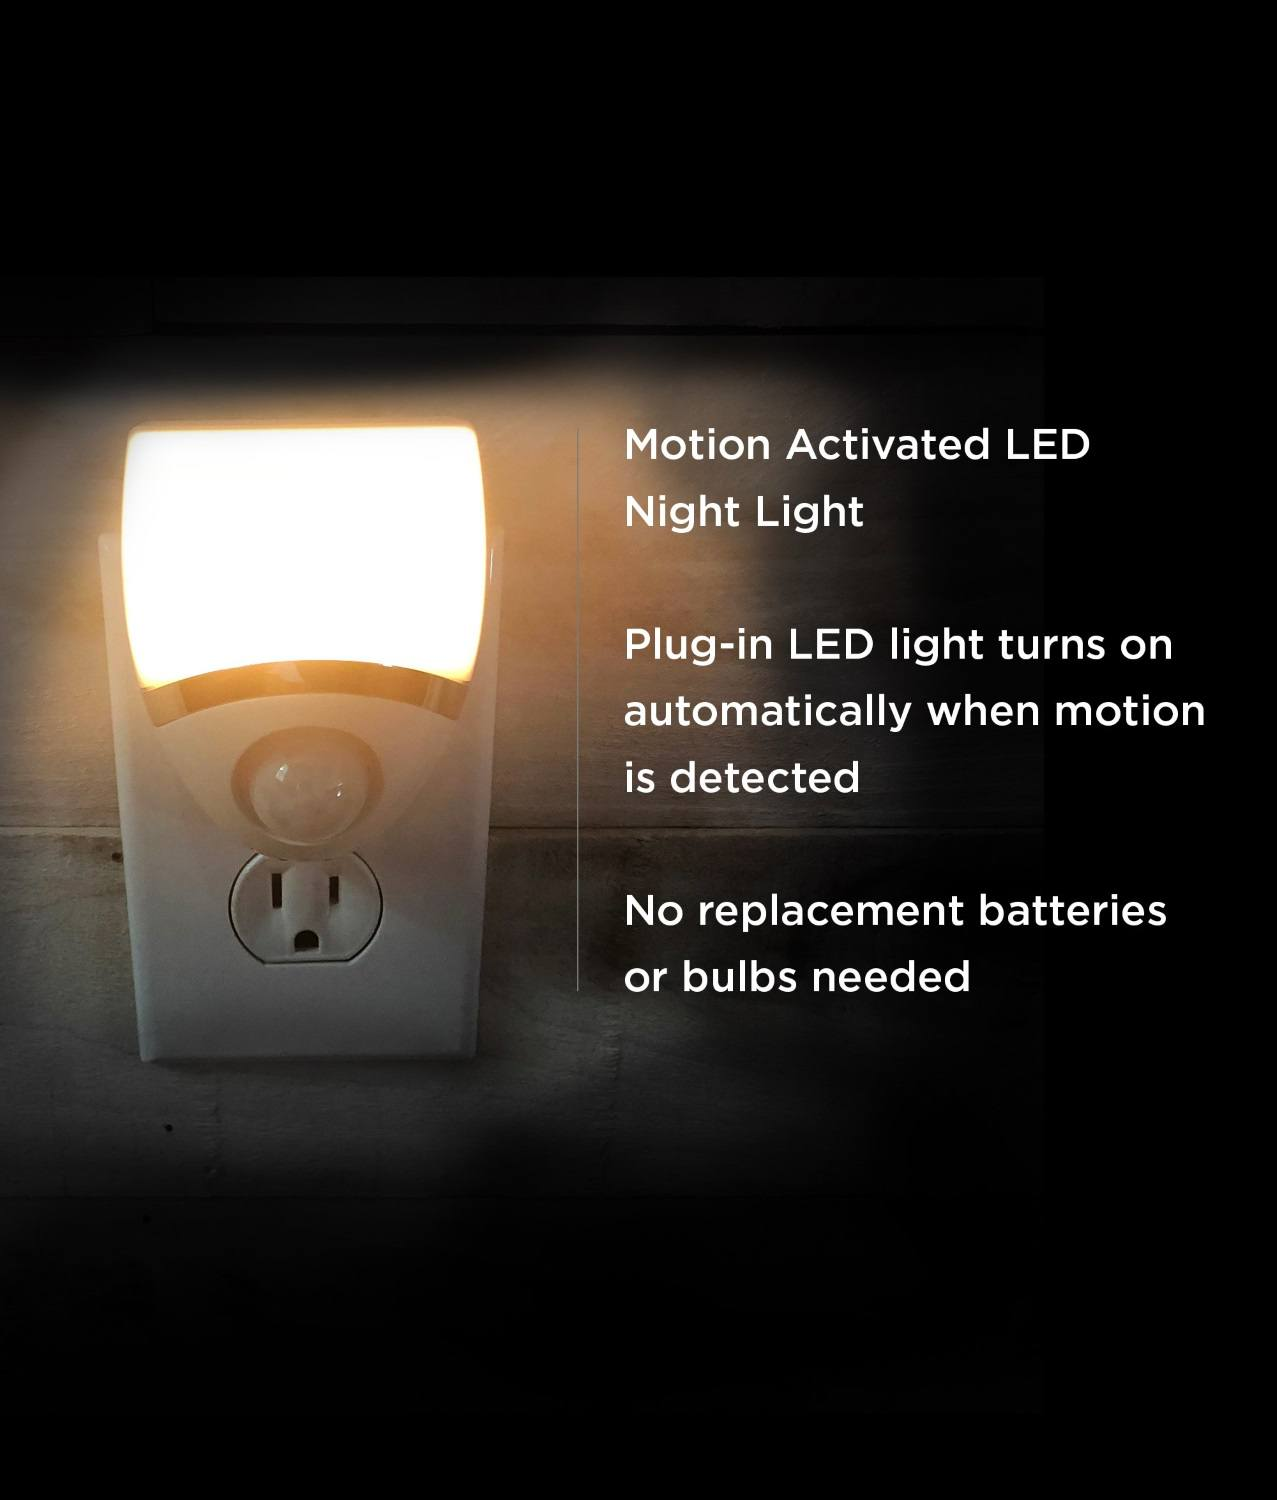 Amerelle Motion-Sensor LED Night Light – Plug-In LED Lights Turn on When  Sensor Detects Motion – Ideal for Bedroom, Bathroom, Hallway, Nursery,